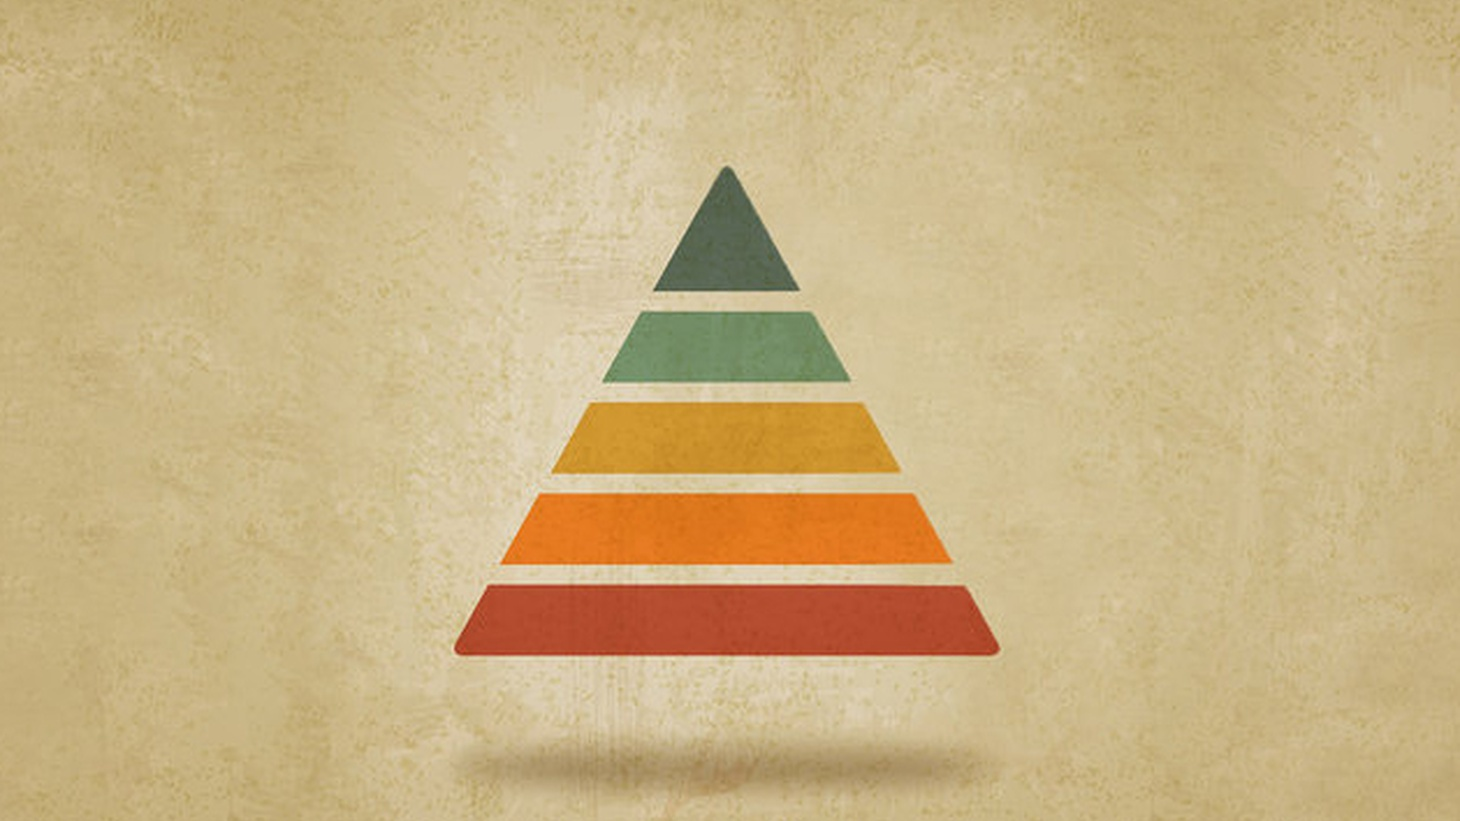 Humans need food, sleep, safety, love, purpose. Psychologist Abraham Maslow ordered our needs into a hierarchy. TED speakers explore that spectrum of need, from primal to profound.